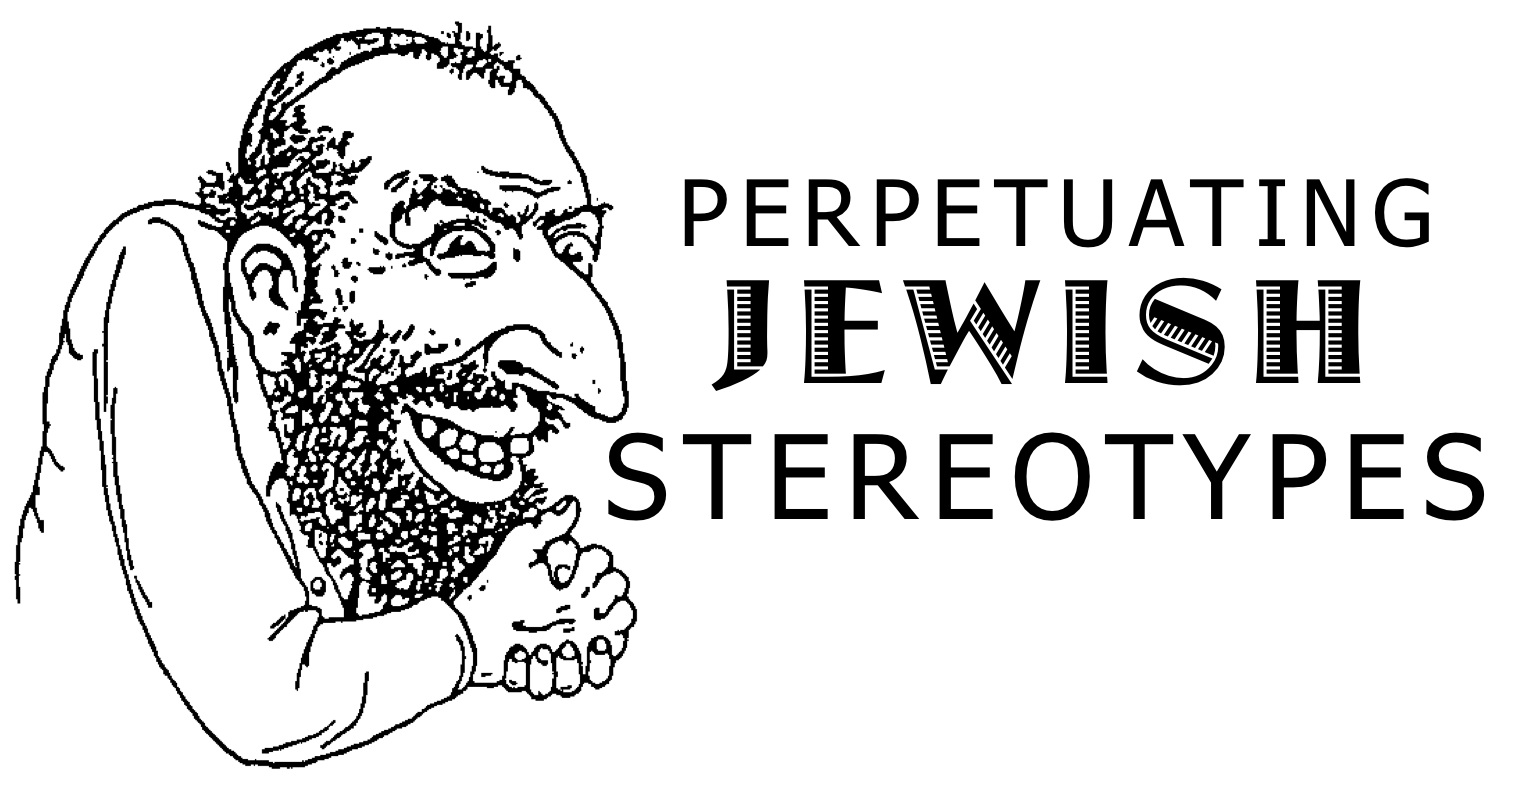 jewish stereotypes The stereotype of the jewish mother, transmitted through myriad popular culture outlets and given intellectual credence by social scientists, became a universally recognized metaphor for nagging, whining, guilt-producing maternal intrusiveness.